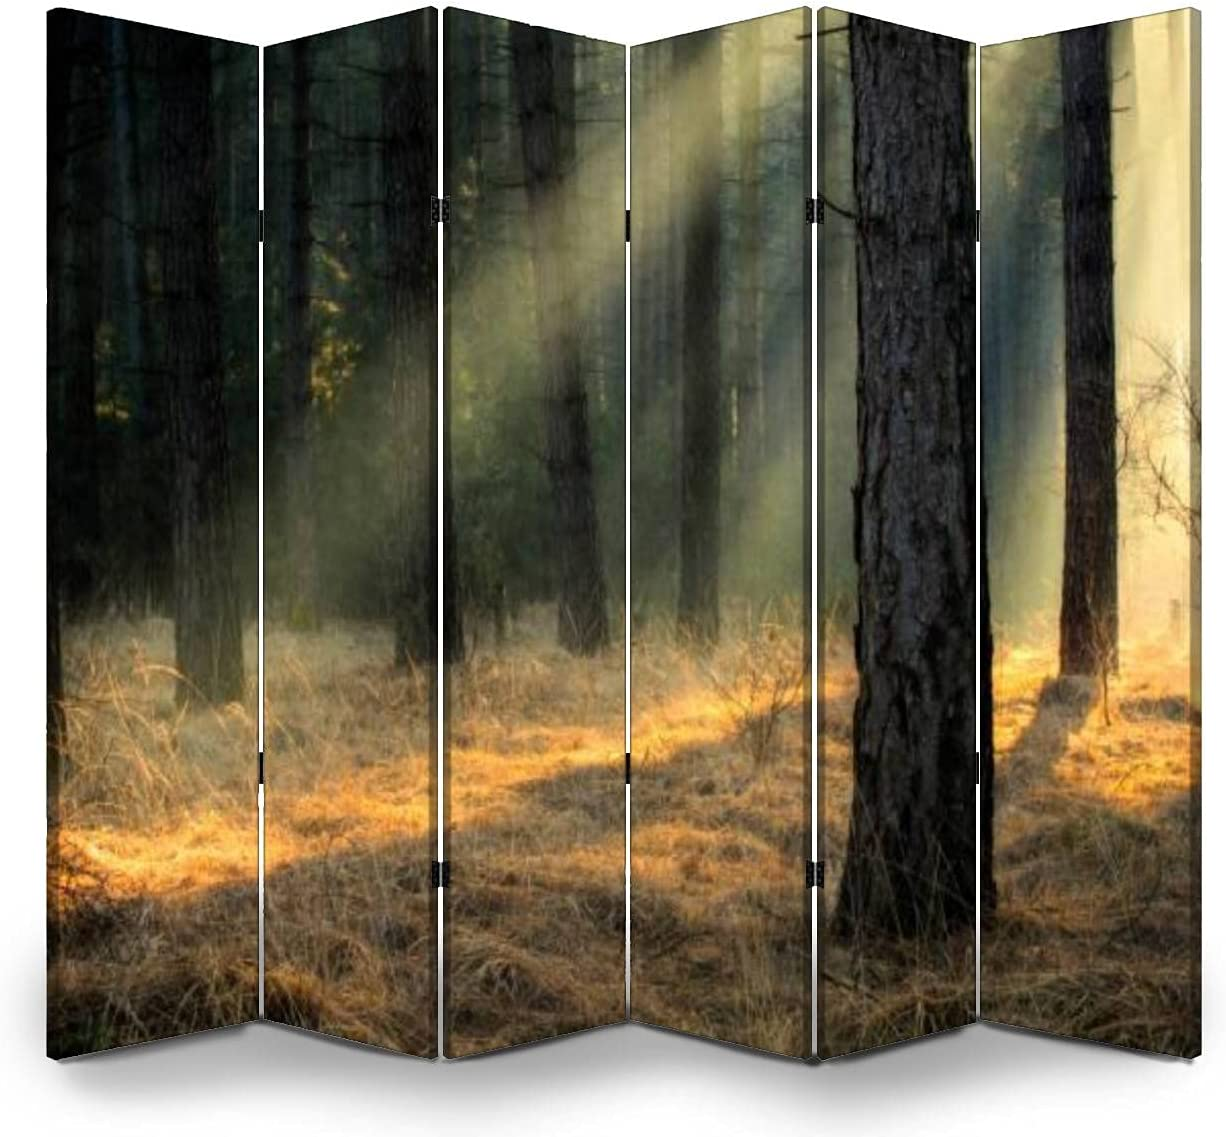 6 Panels Max 64% OFF Room Divider Screen Partition Easy-to-use Light in Pine T Amazing a